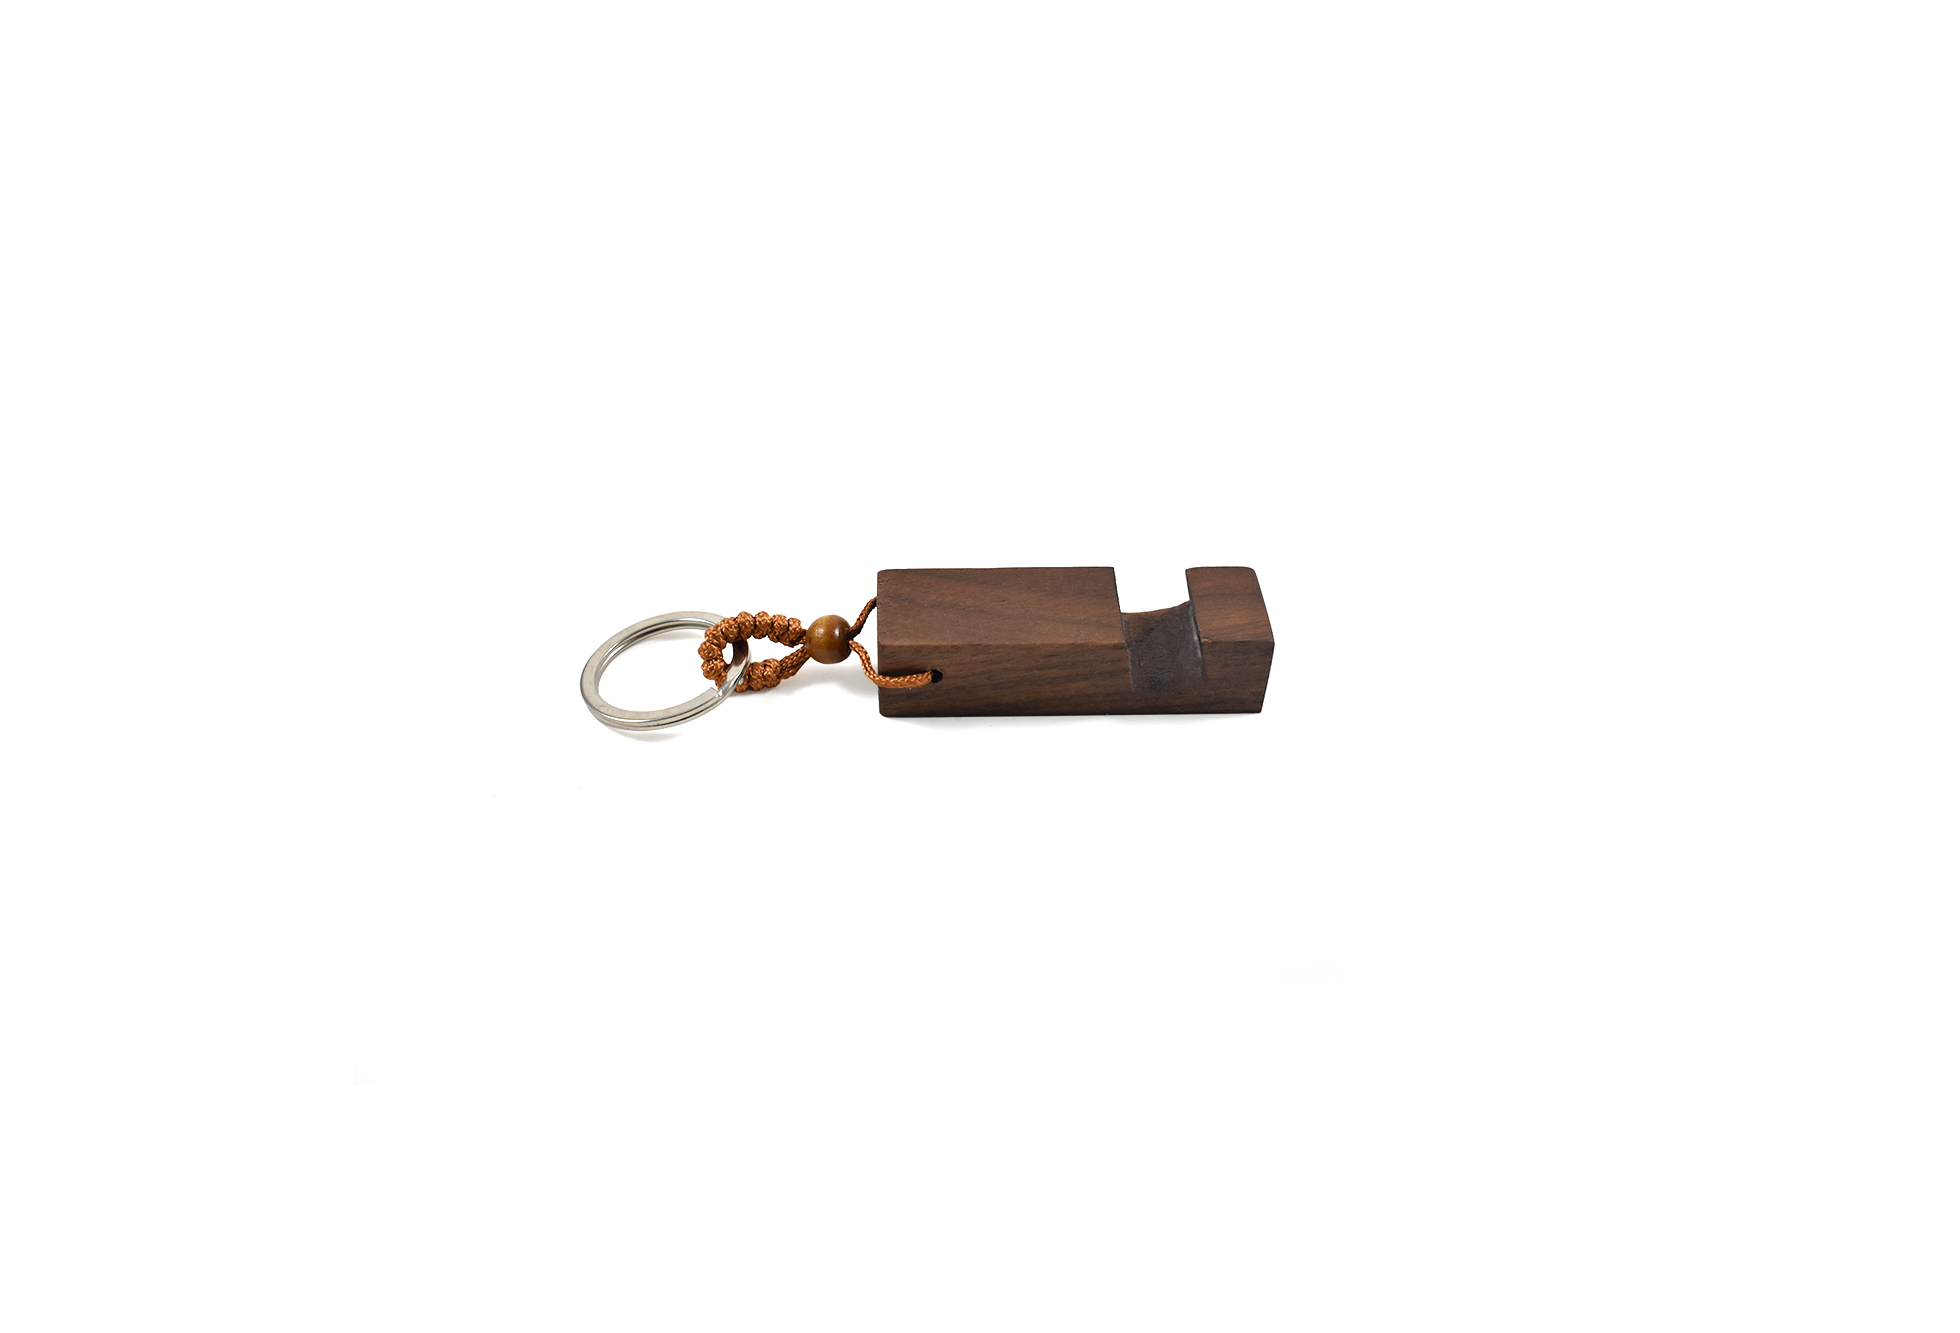 Walnut wood keychain with mobile phone holder